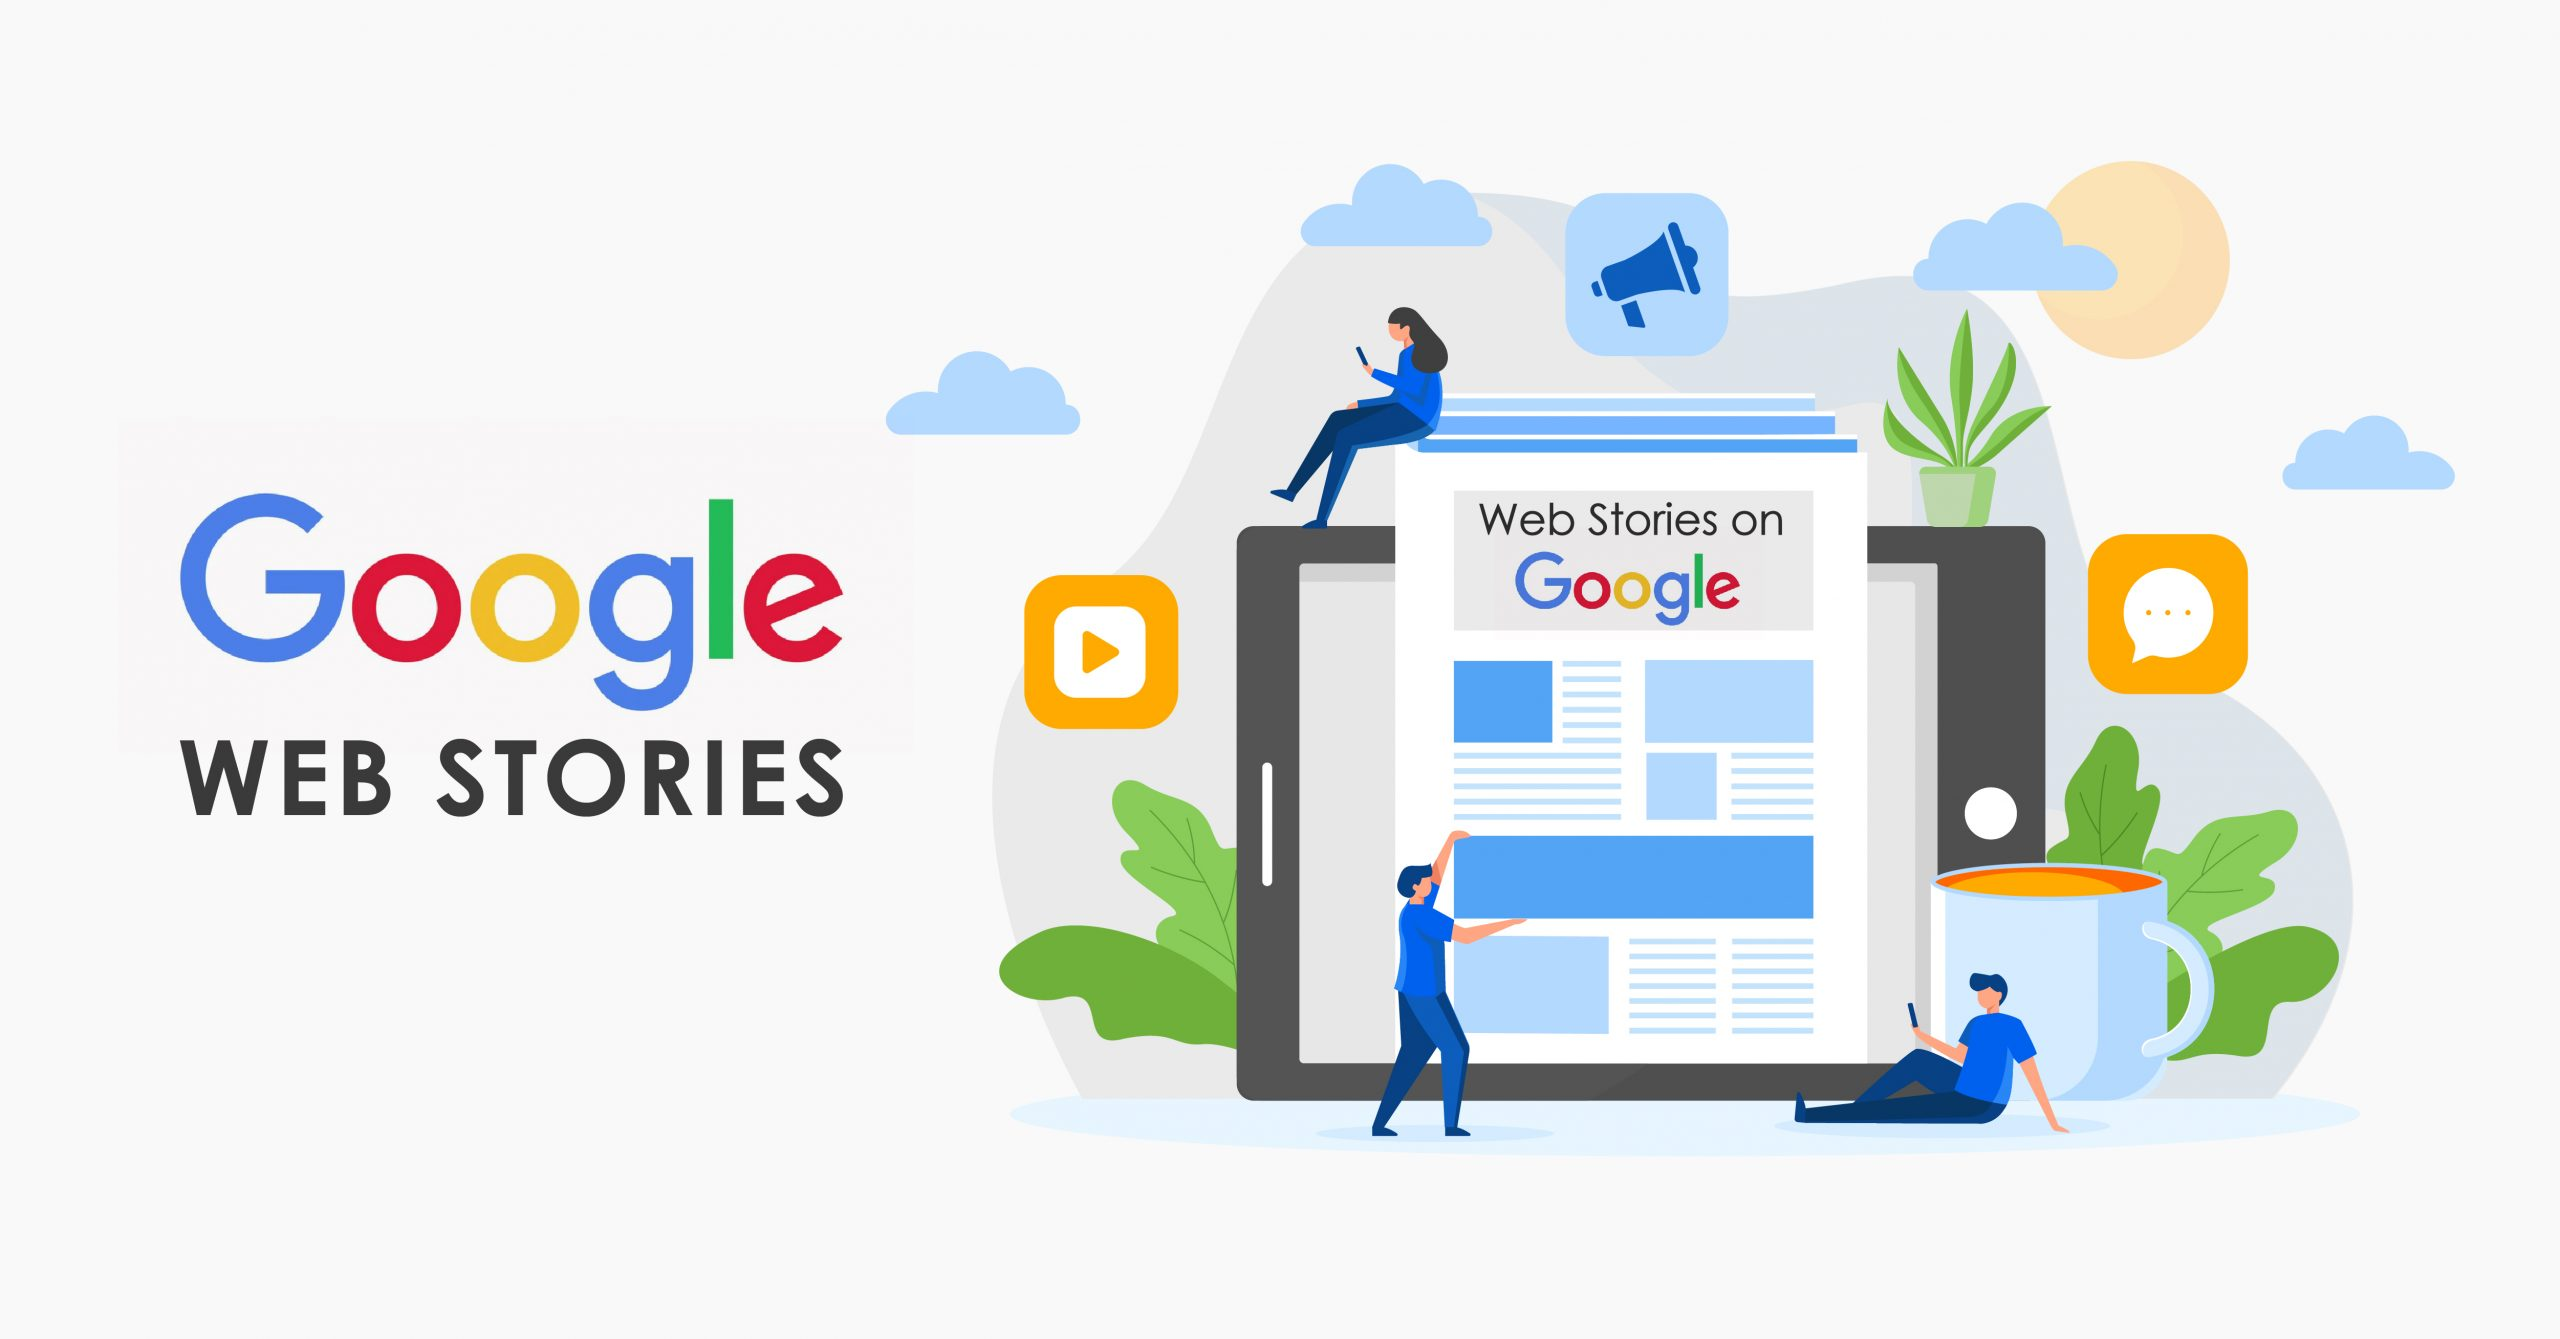 How to Optimize for Google Web Stories